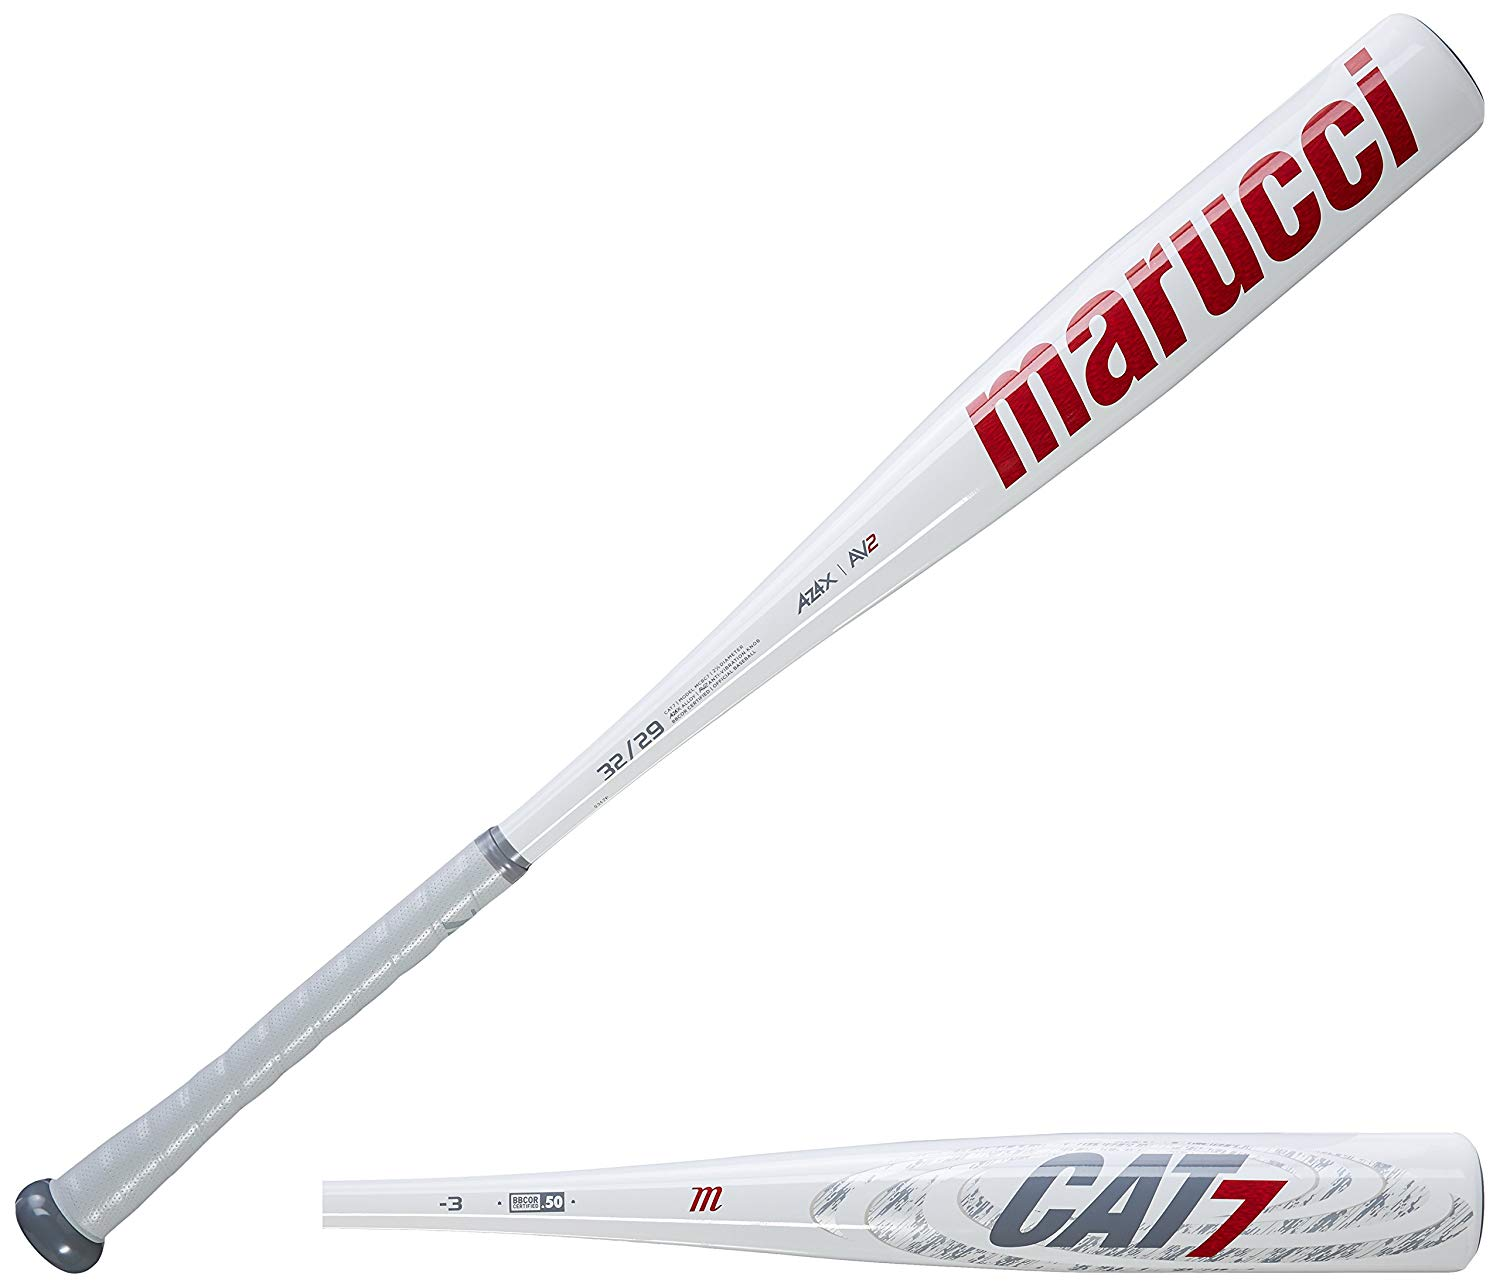 marucci-mcbc7-cat7-3-bbcor-baseball-bat-32-inch-29-oz MCBC7-3229 Marucci 849817039823 Az4x alloy construction provides increased strength and a higher response rate.